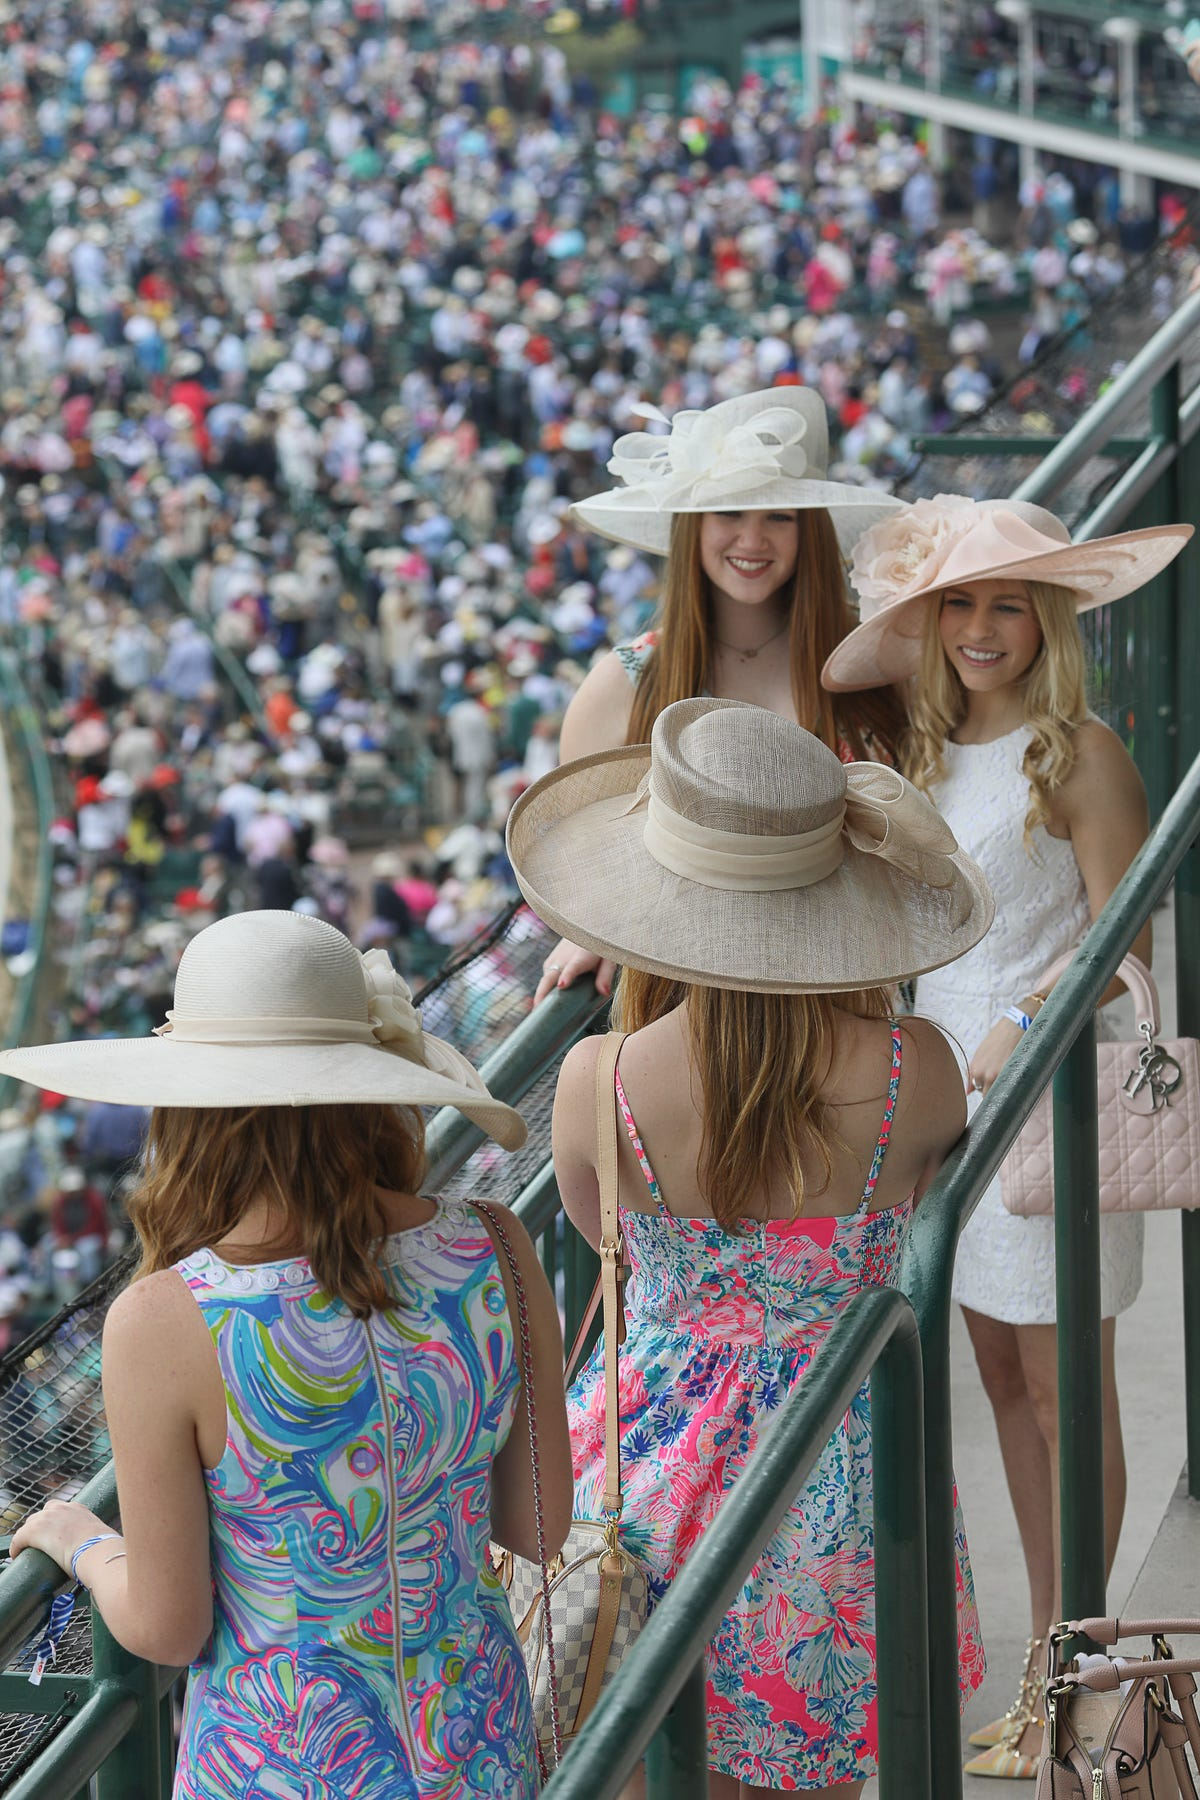 e71f22f2a Kentucky Derby fashion: hats, dresses, ties & what not to wear